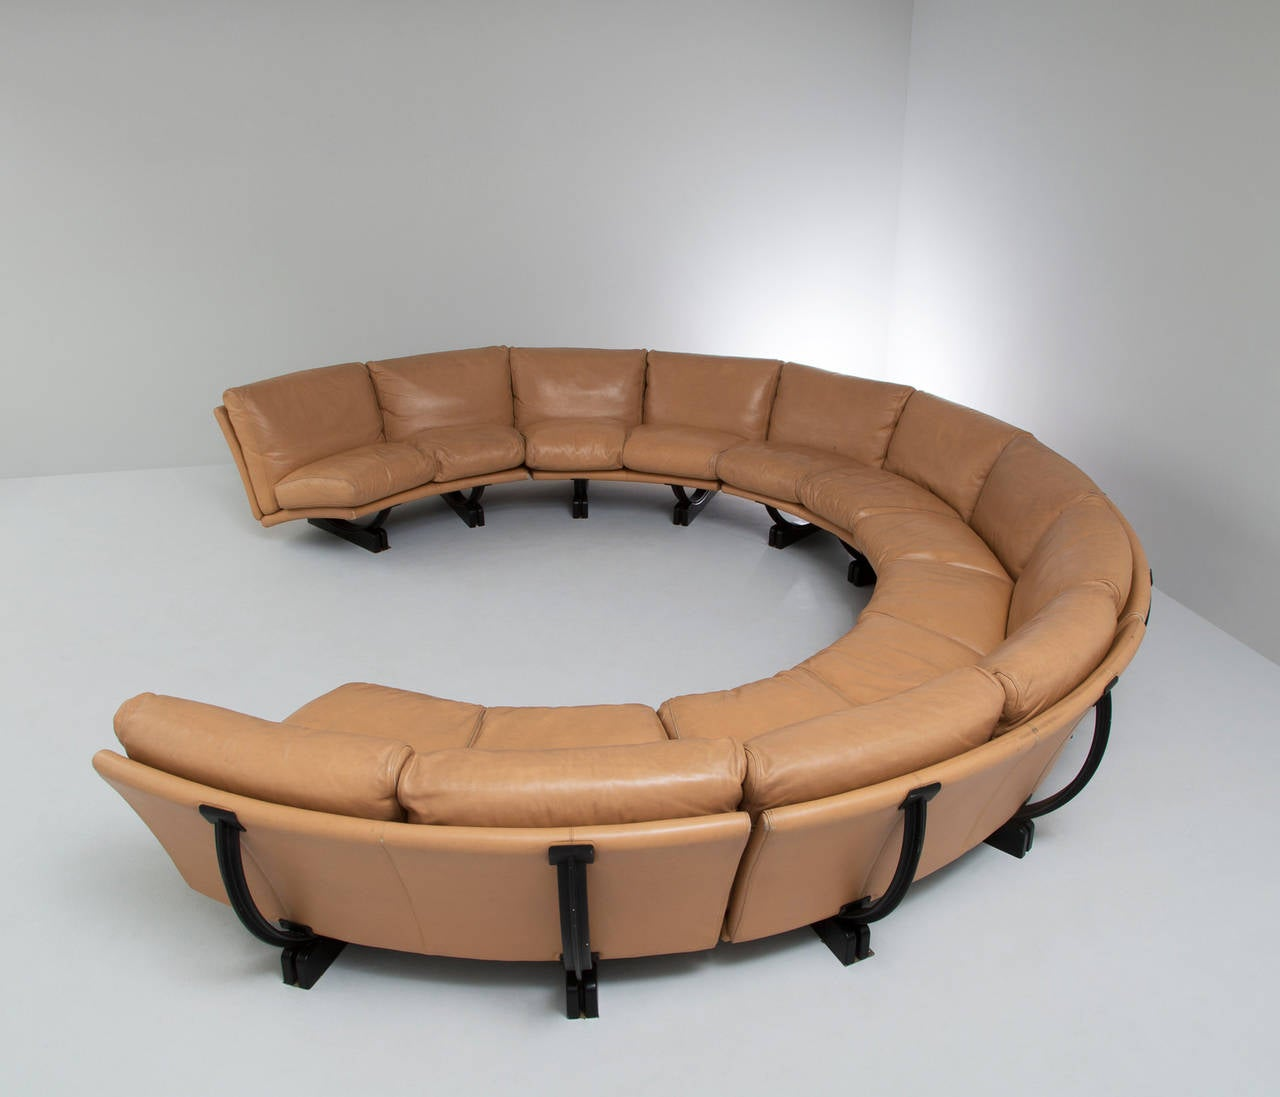 Extrem Big Sofa Extreme Large Curved Sectional Sofa By Poltrona Frau At